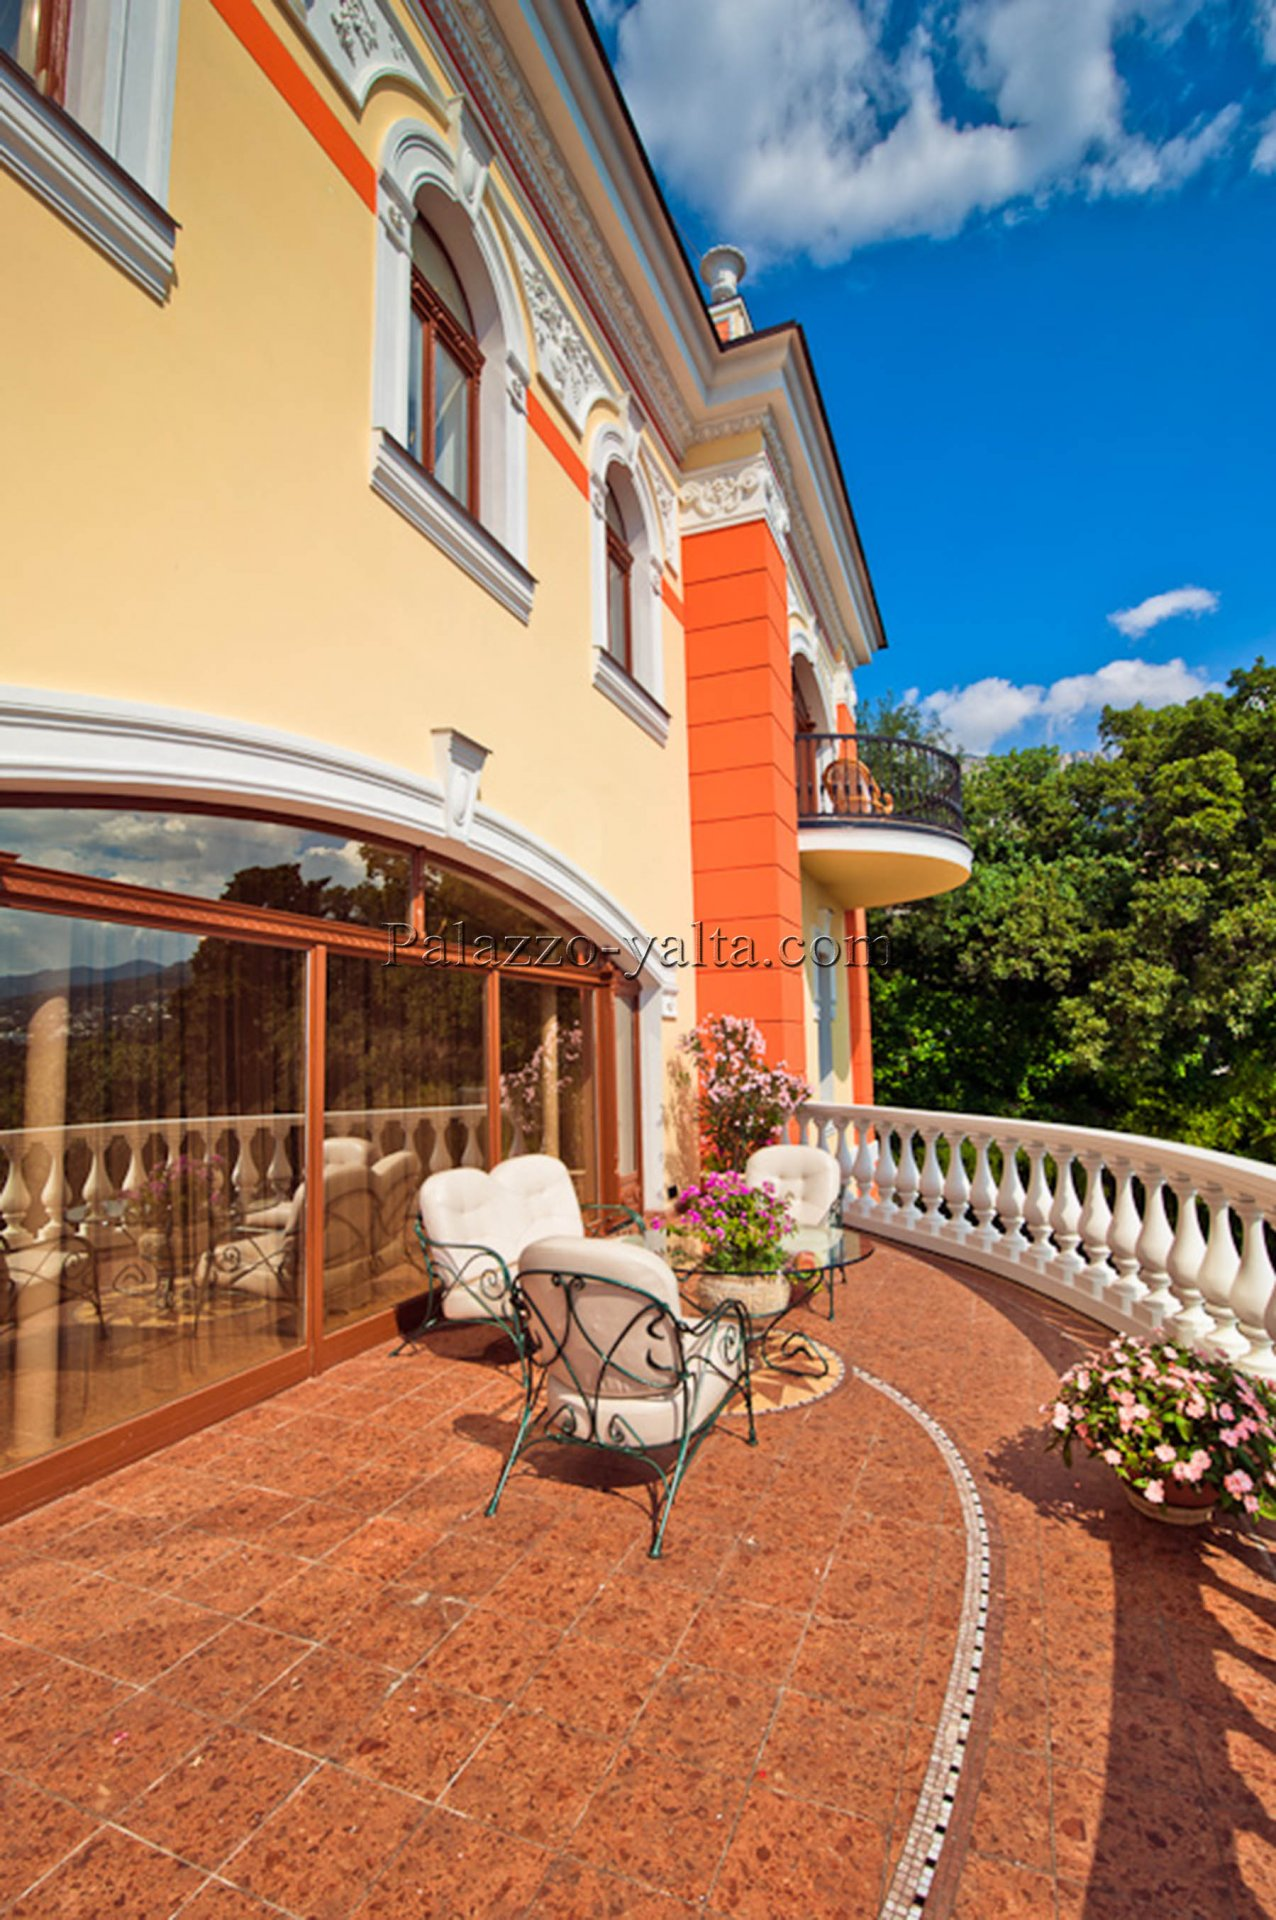 To stay in Pietrasanta on the beach reviews